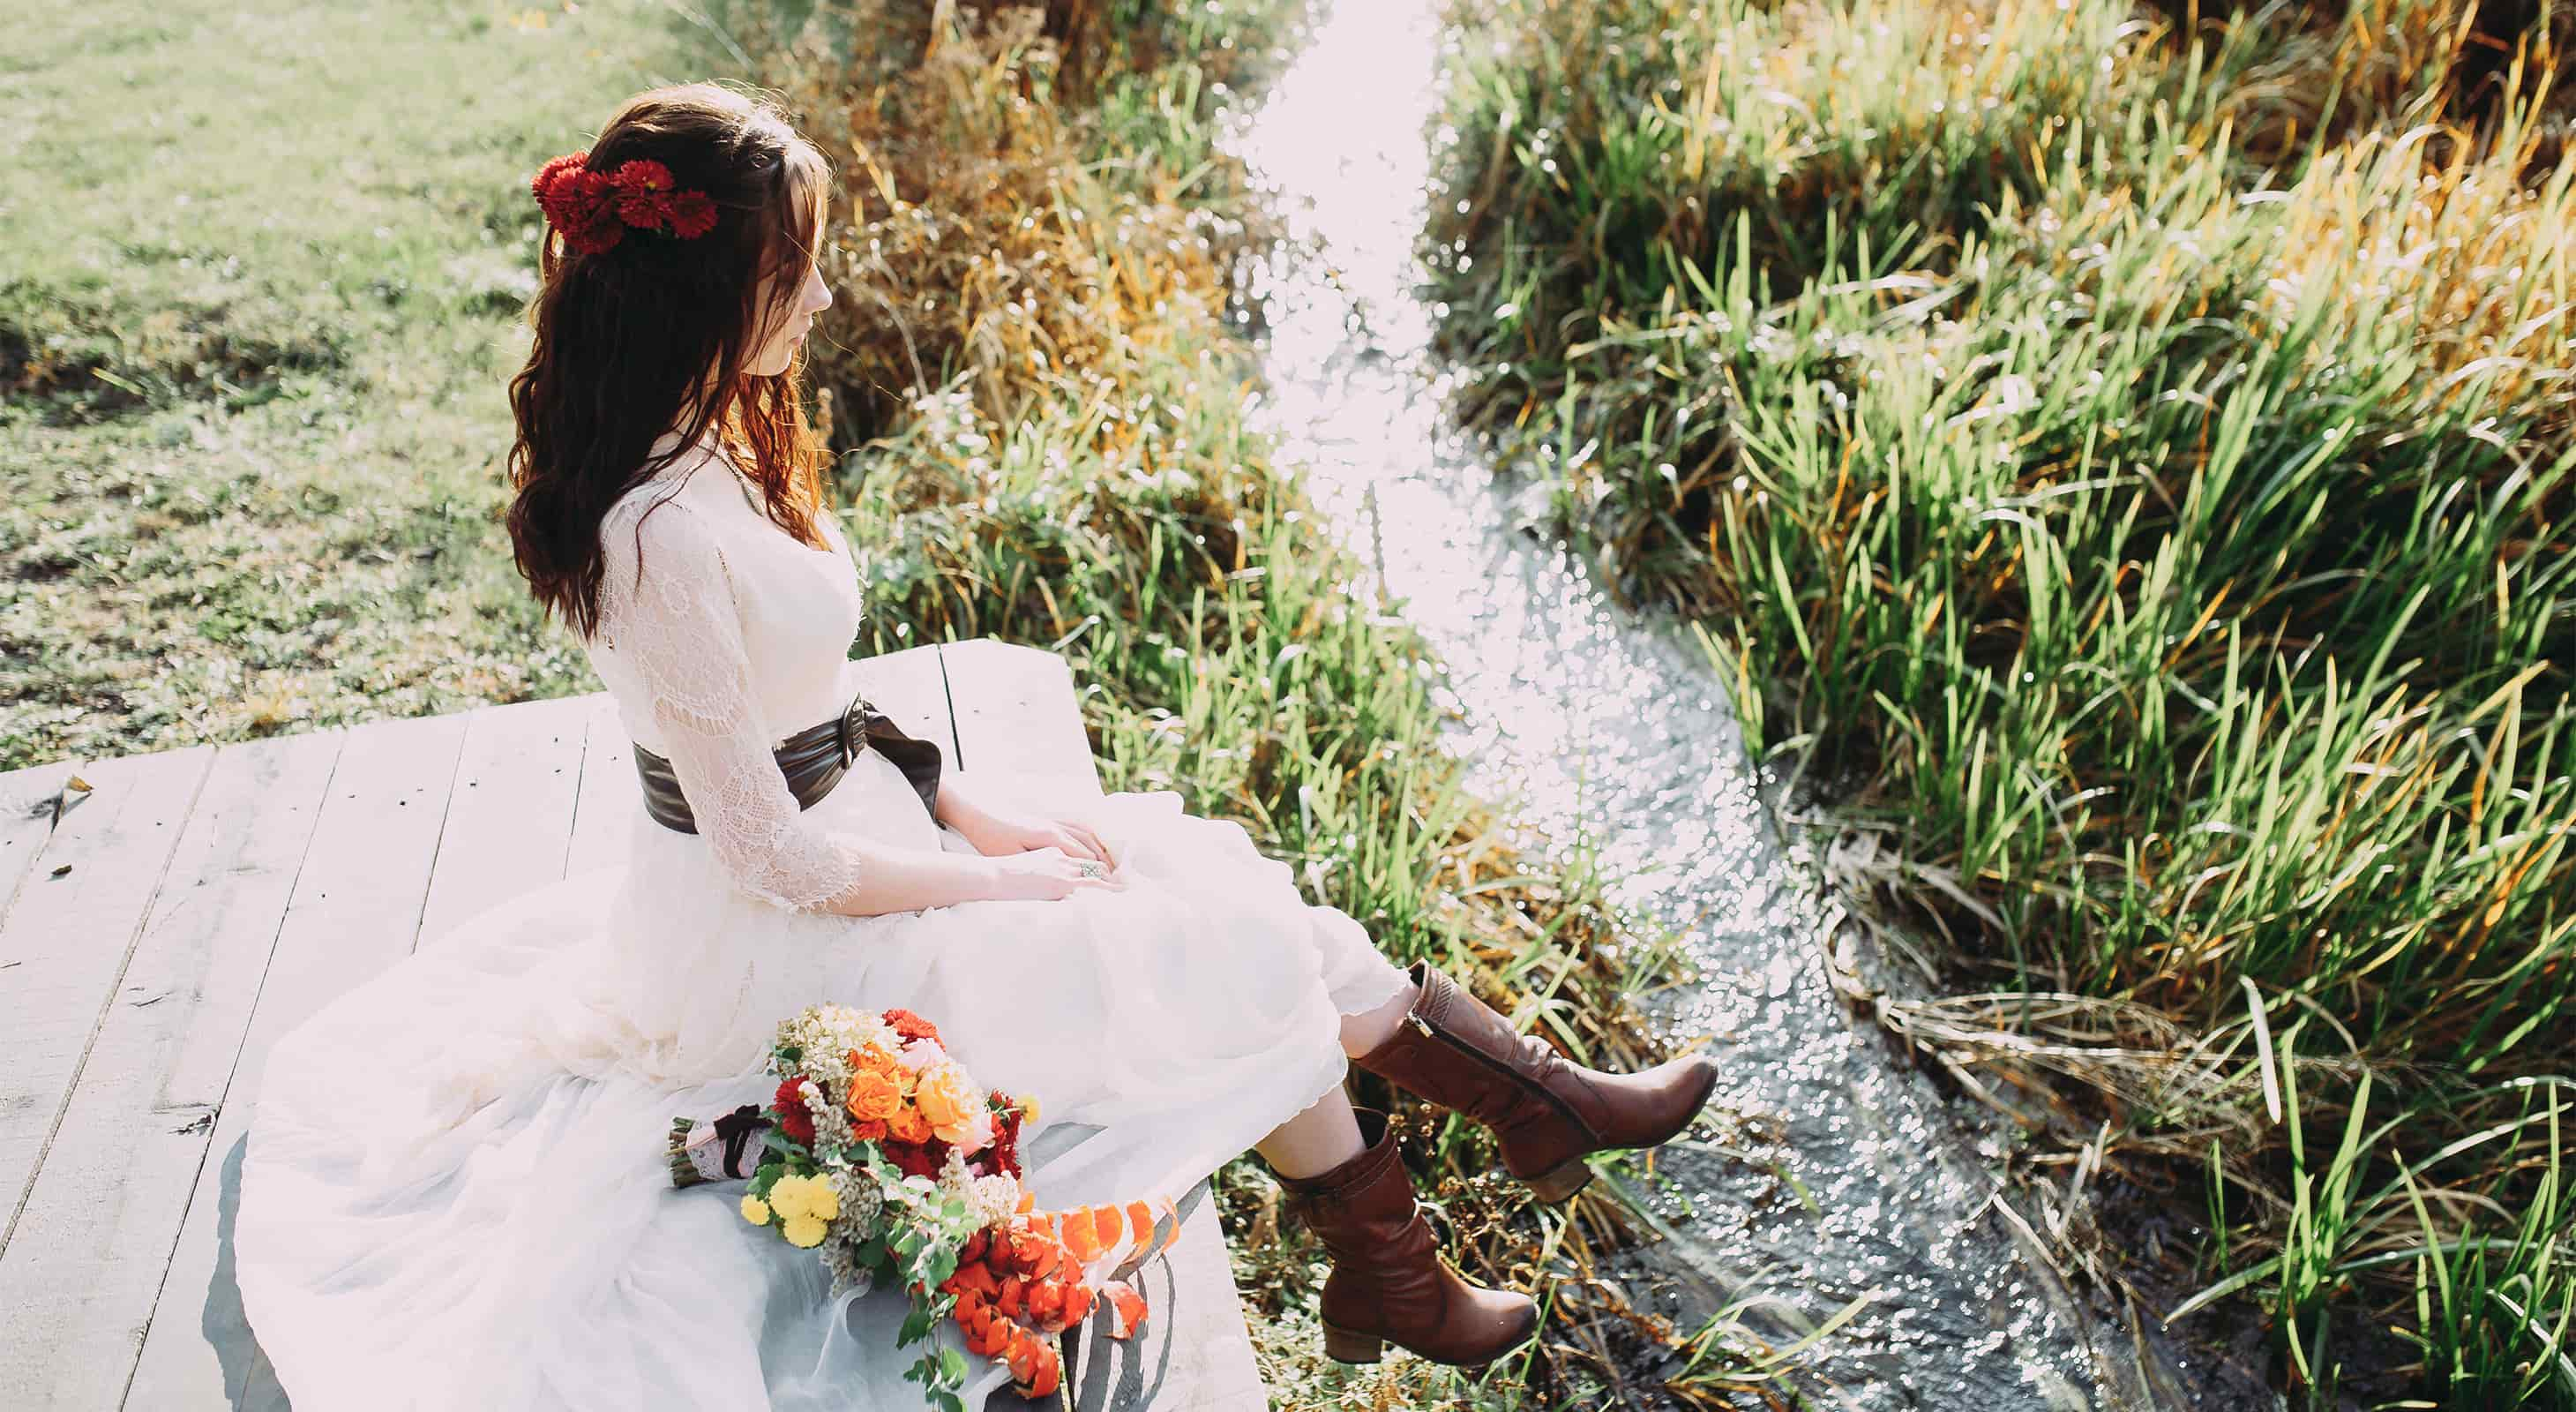 Bride with cowboy boots dangling her feet near a brook